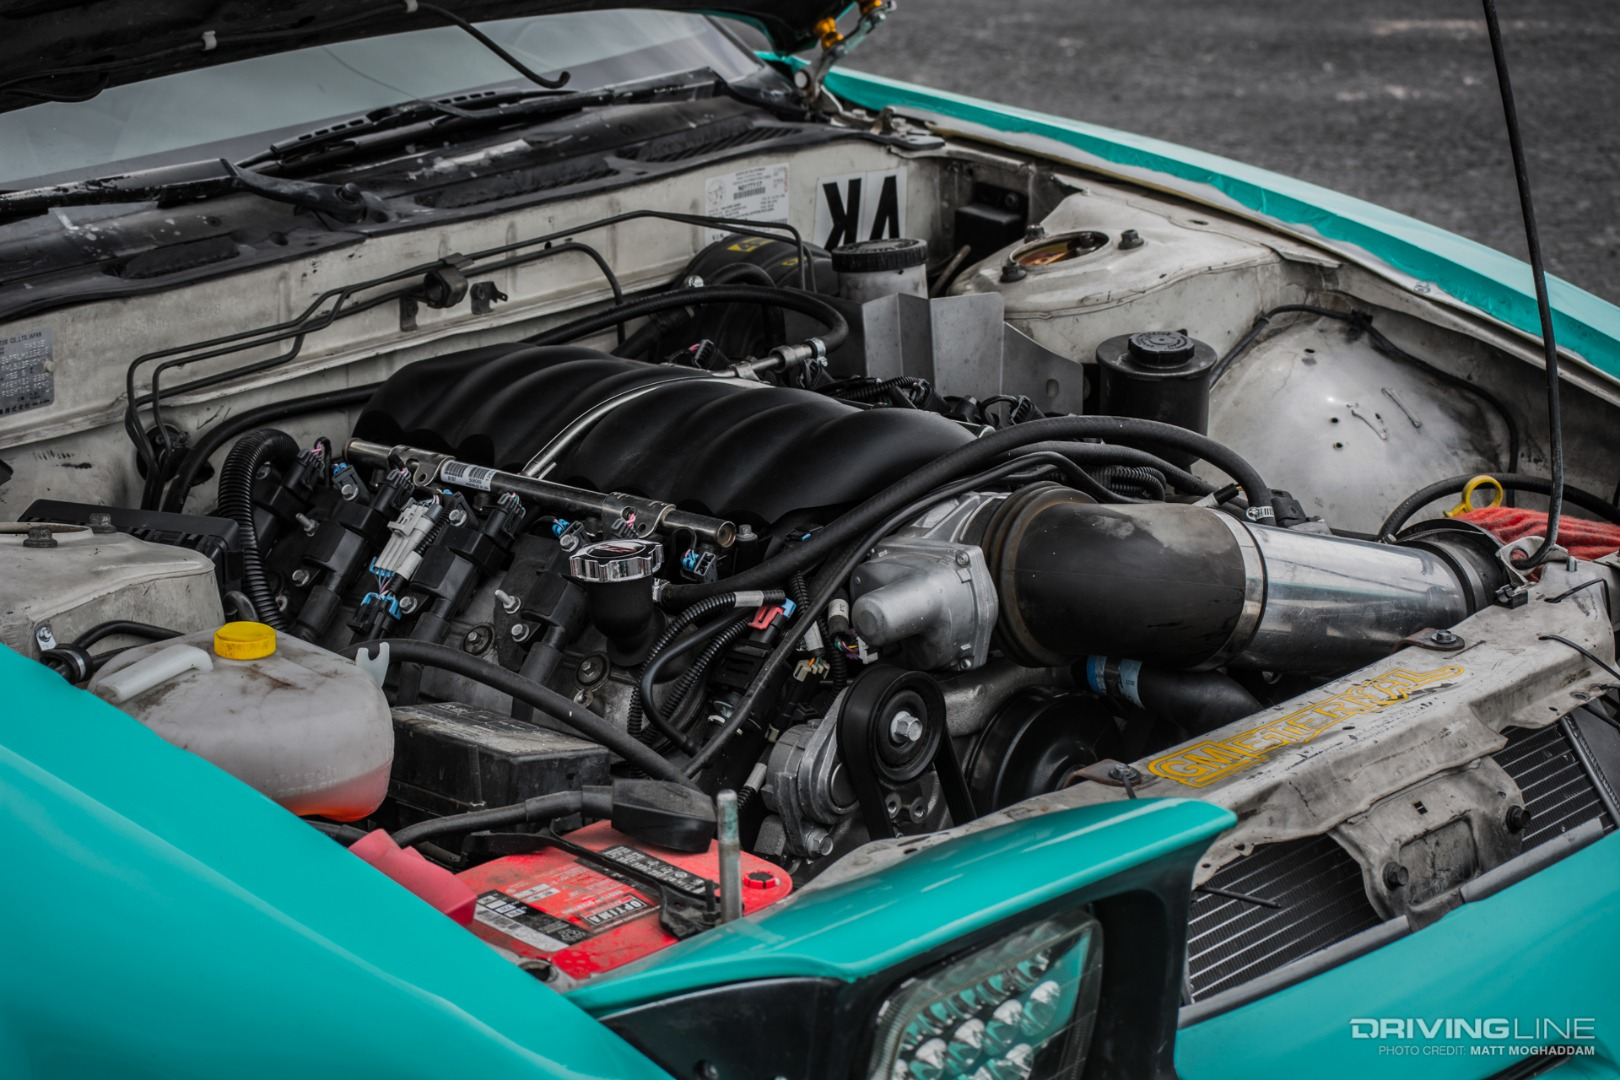 Keepin' It Legal: The LS-Swapped S13 That California Is Cool With